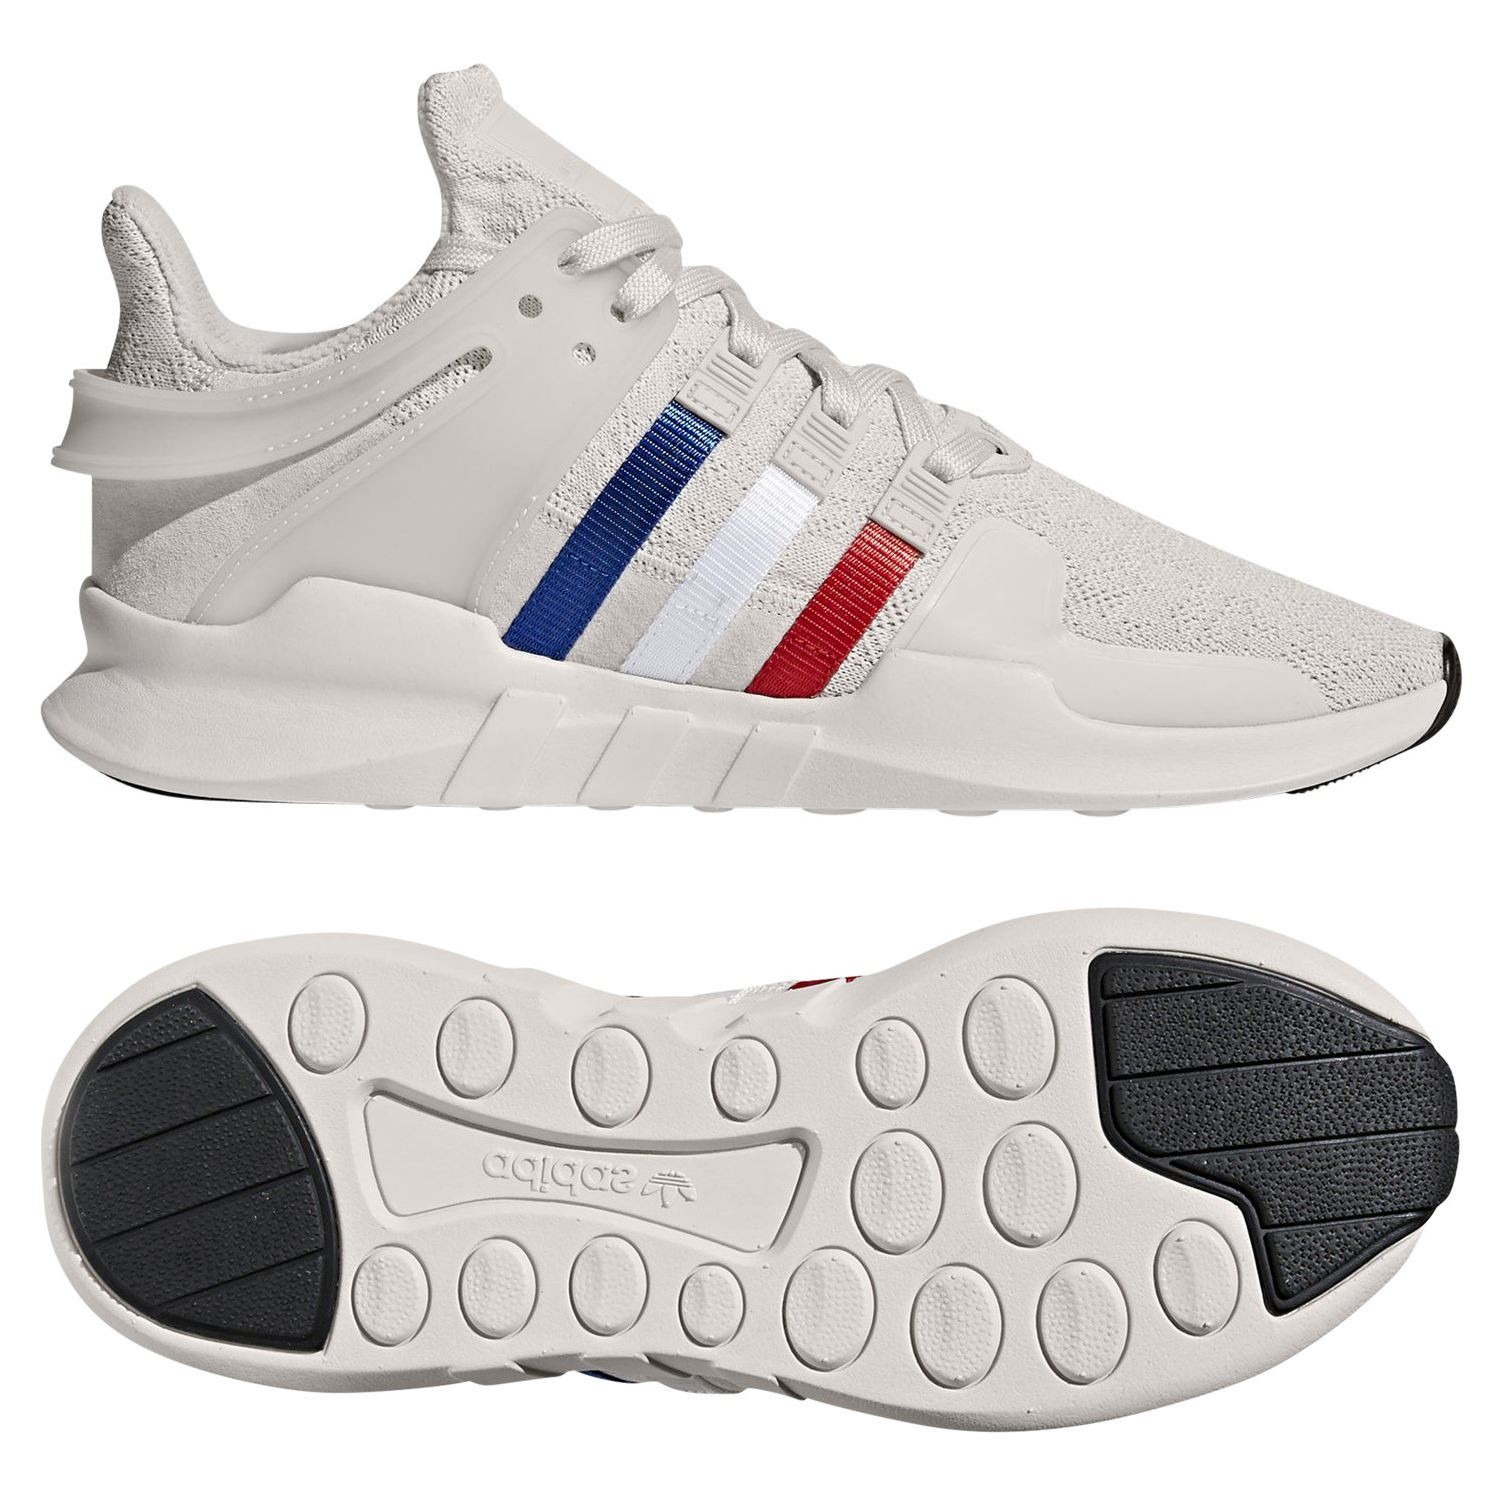 78189430b392 Details about adidas ORIGINALS EQT SUPPORT ADV TRAINERS GREY SHOES SNEAKERS  90S RETRO MEN S